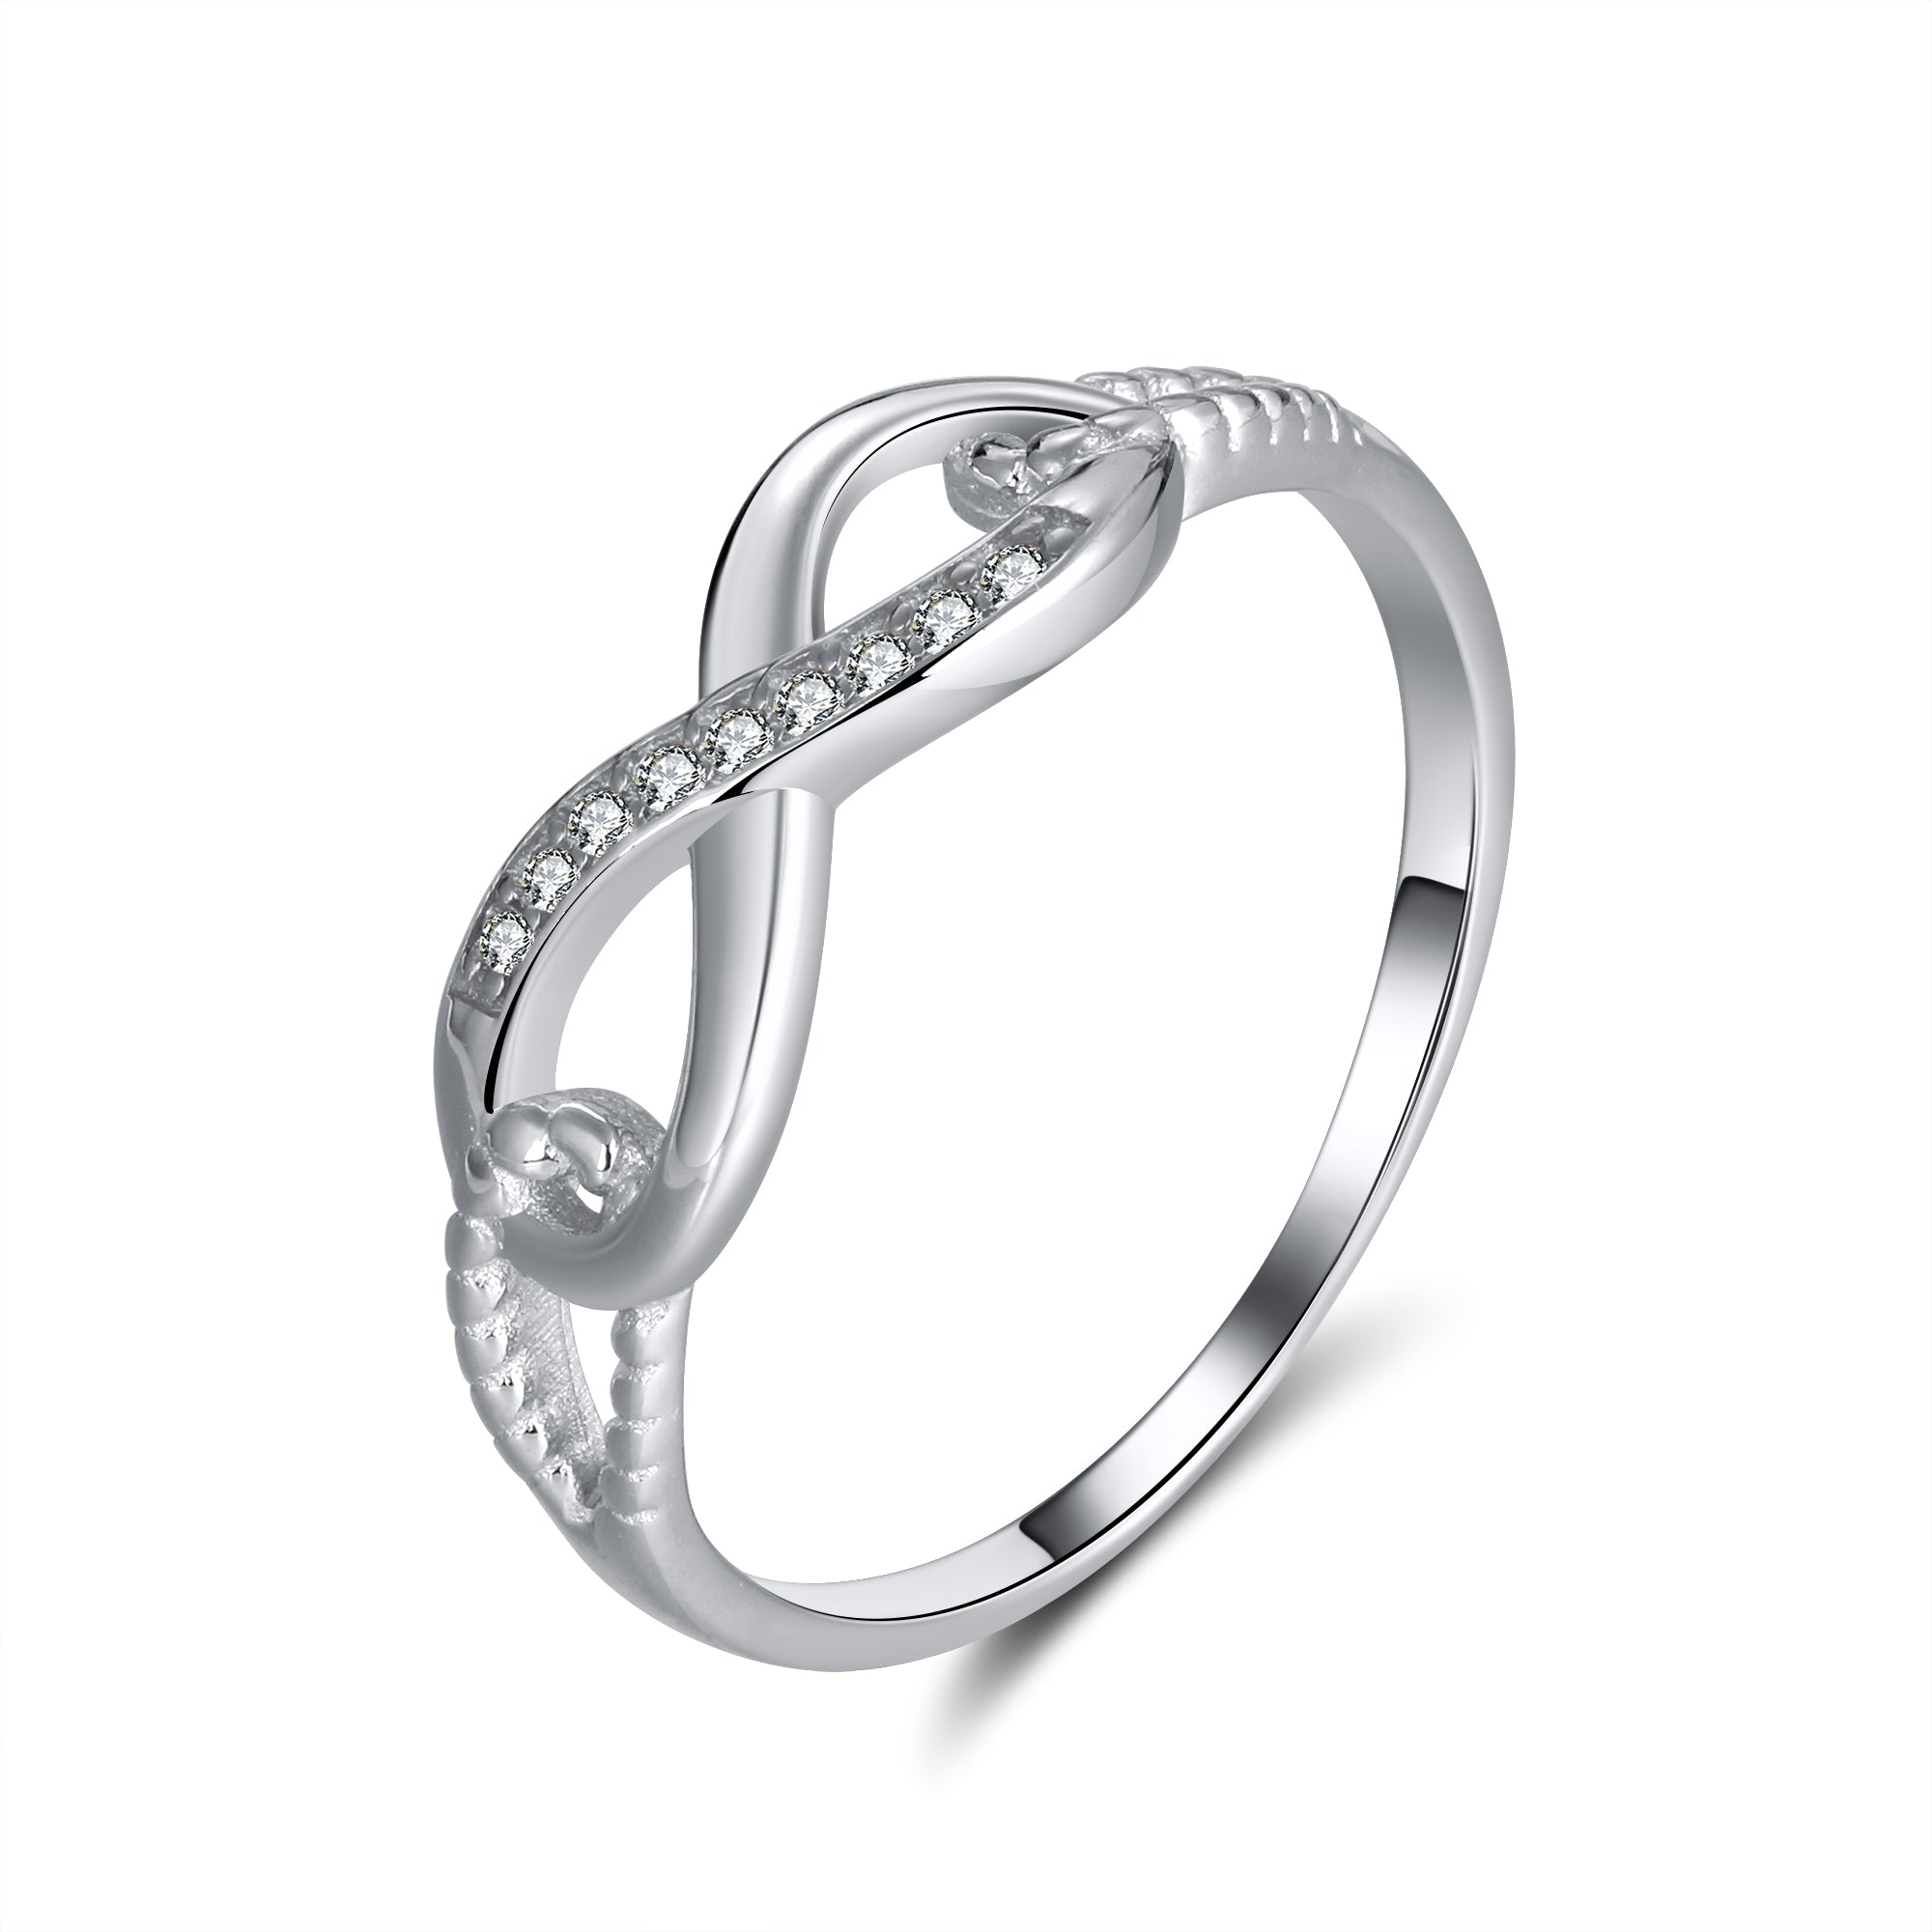 Anna Beautiful Infinity 925 Sterling Silver Ring- Ginger Lyne Collection